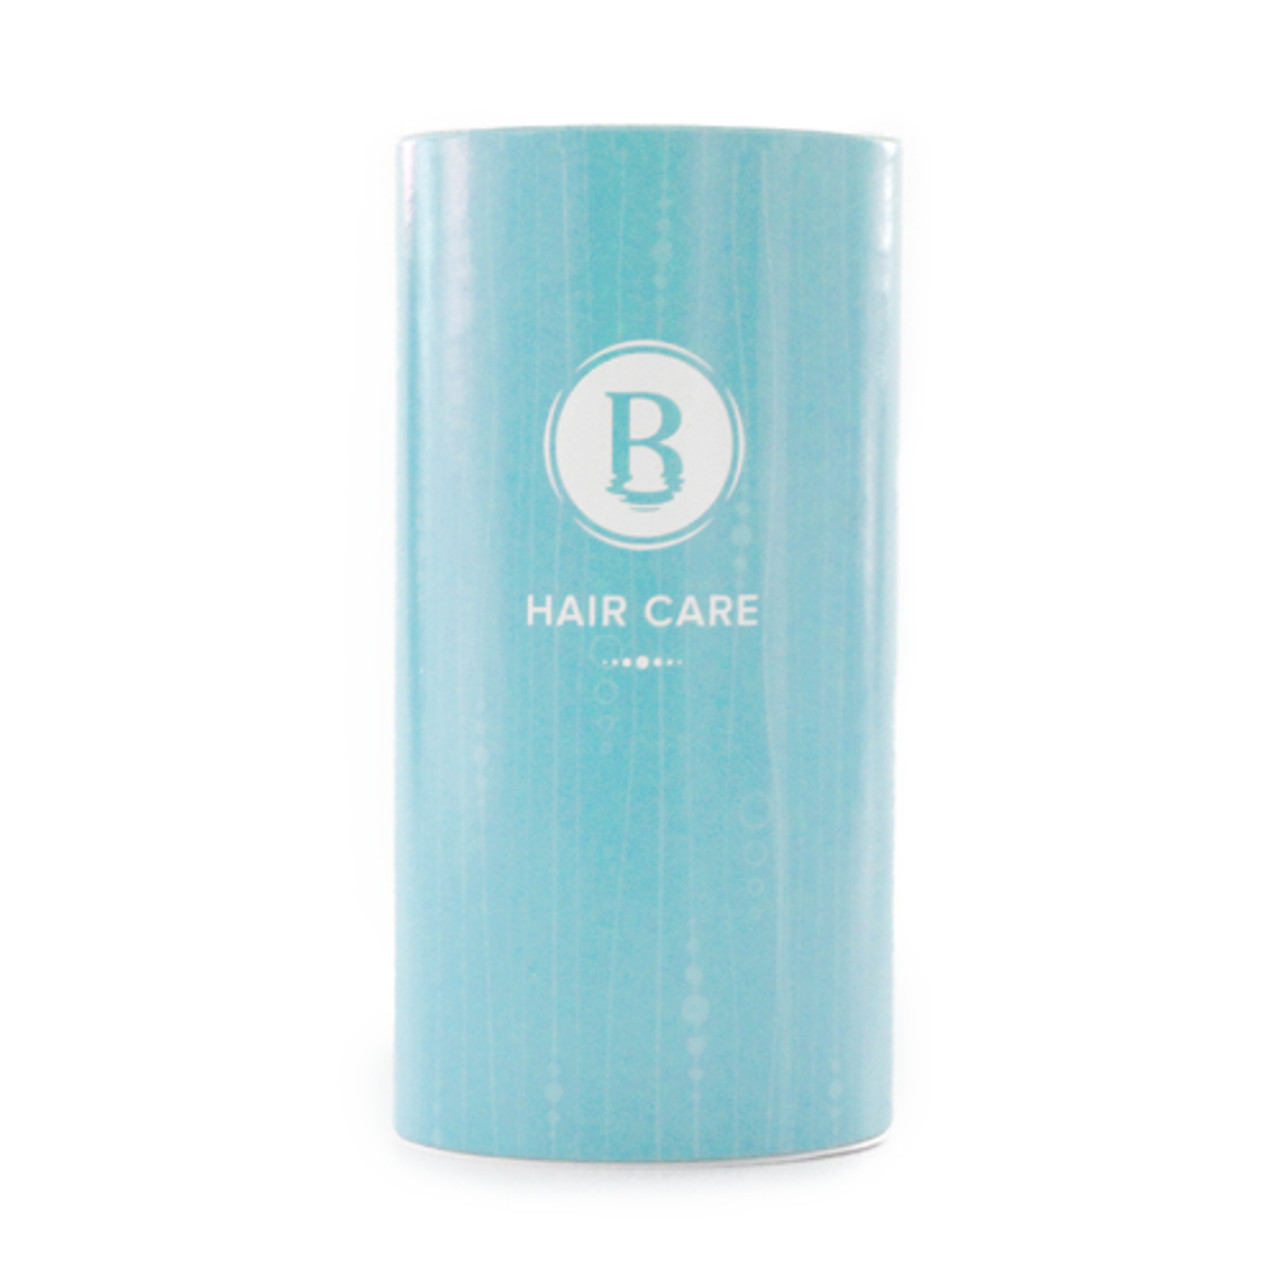 Customize Your Own Hair Care Barrel